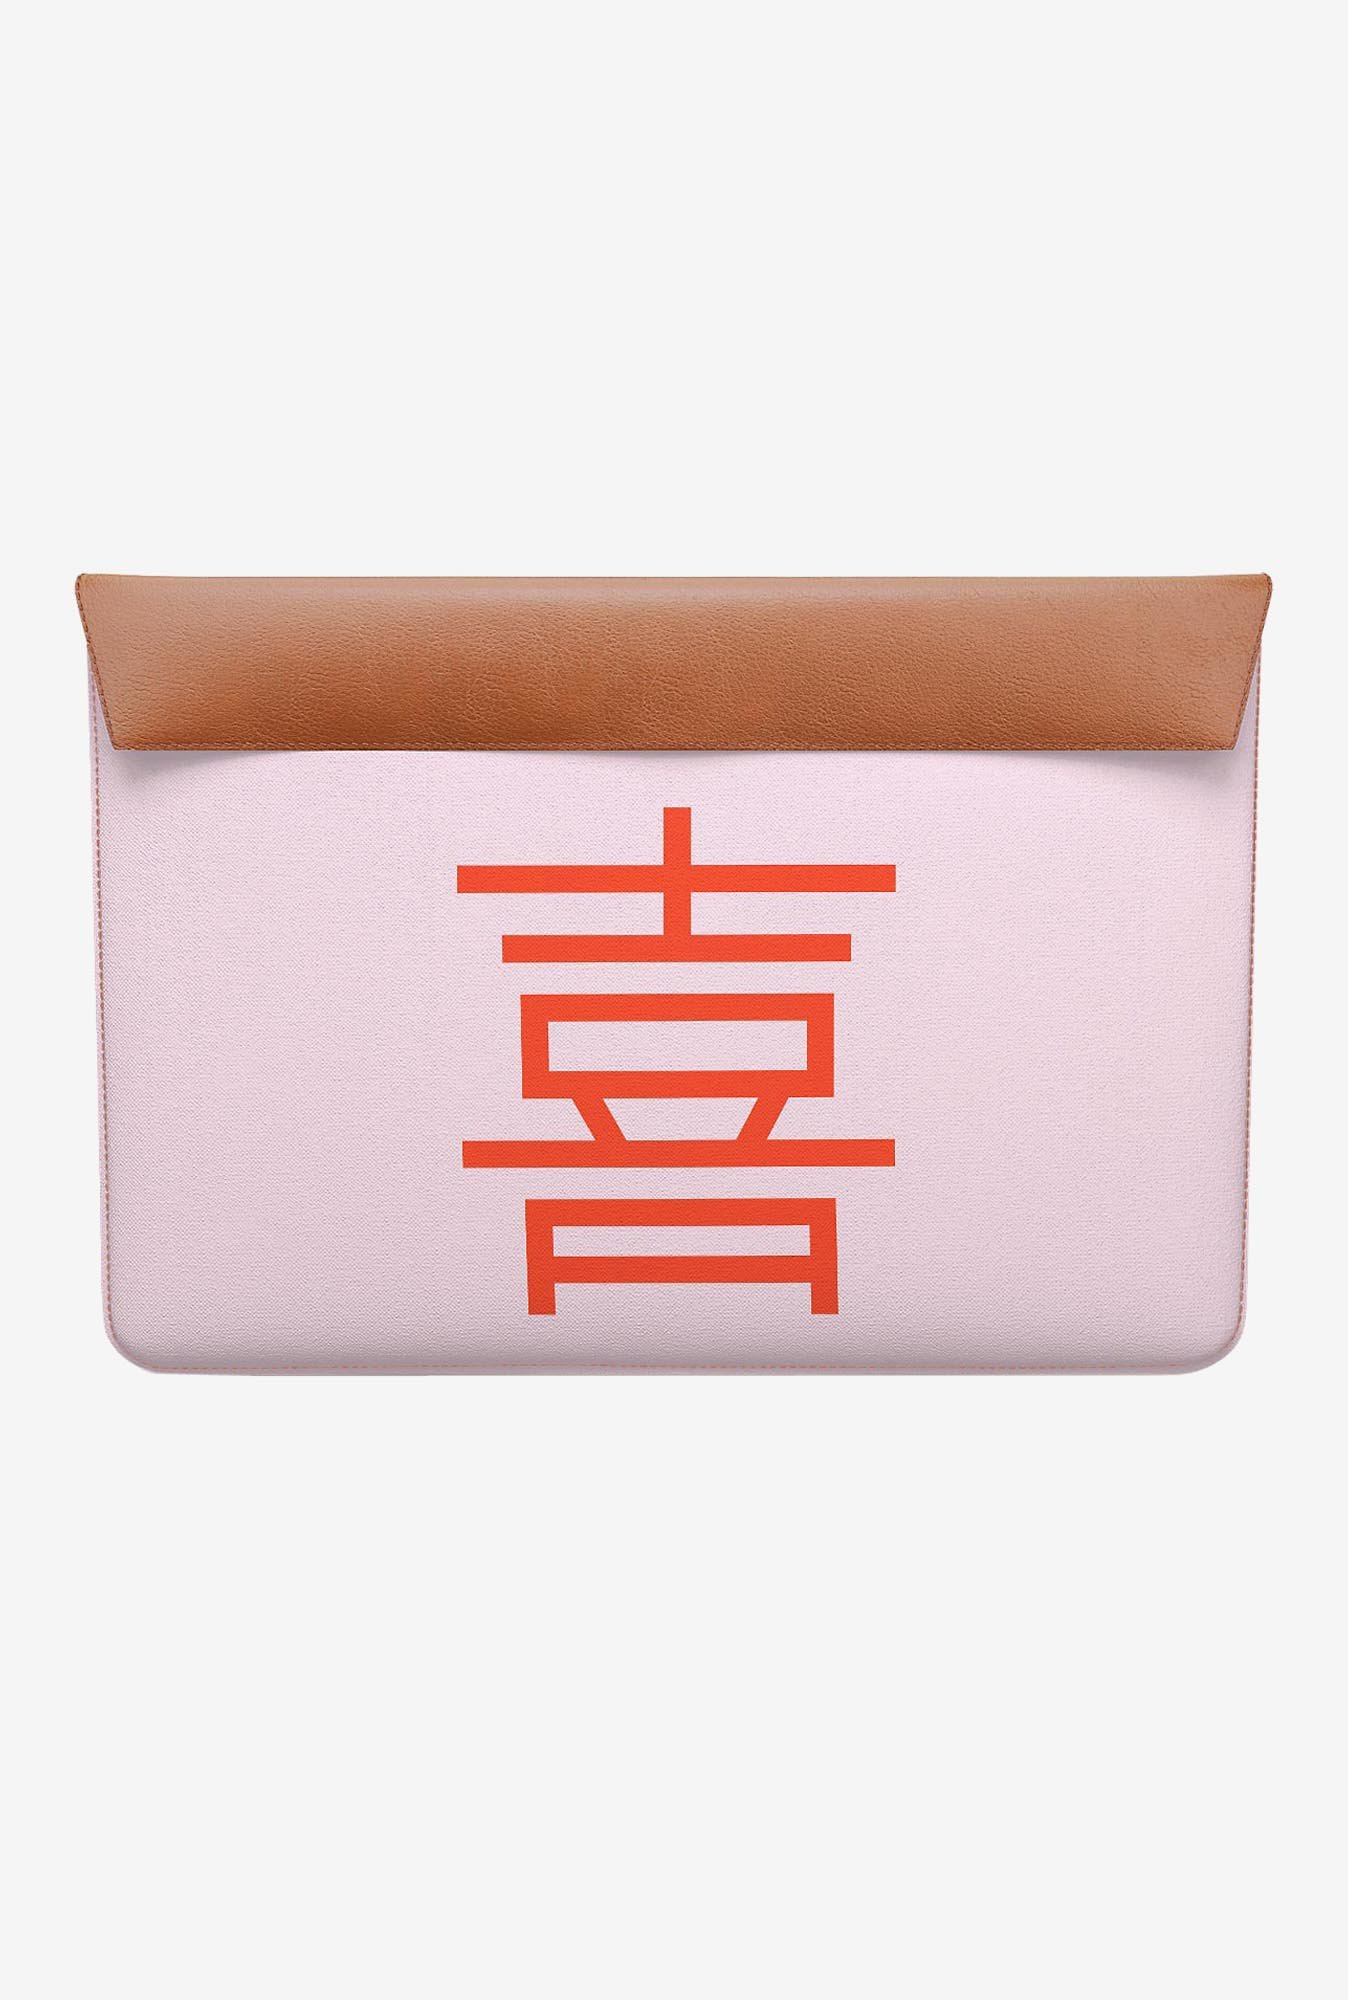 DailyObjects Love Chinese MacBook Air 11 Envelope Sleeve